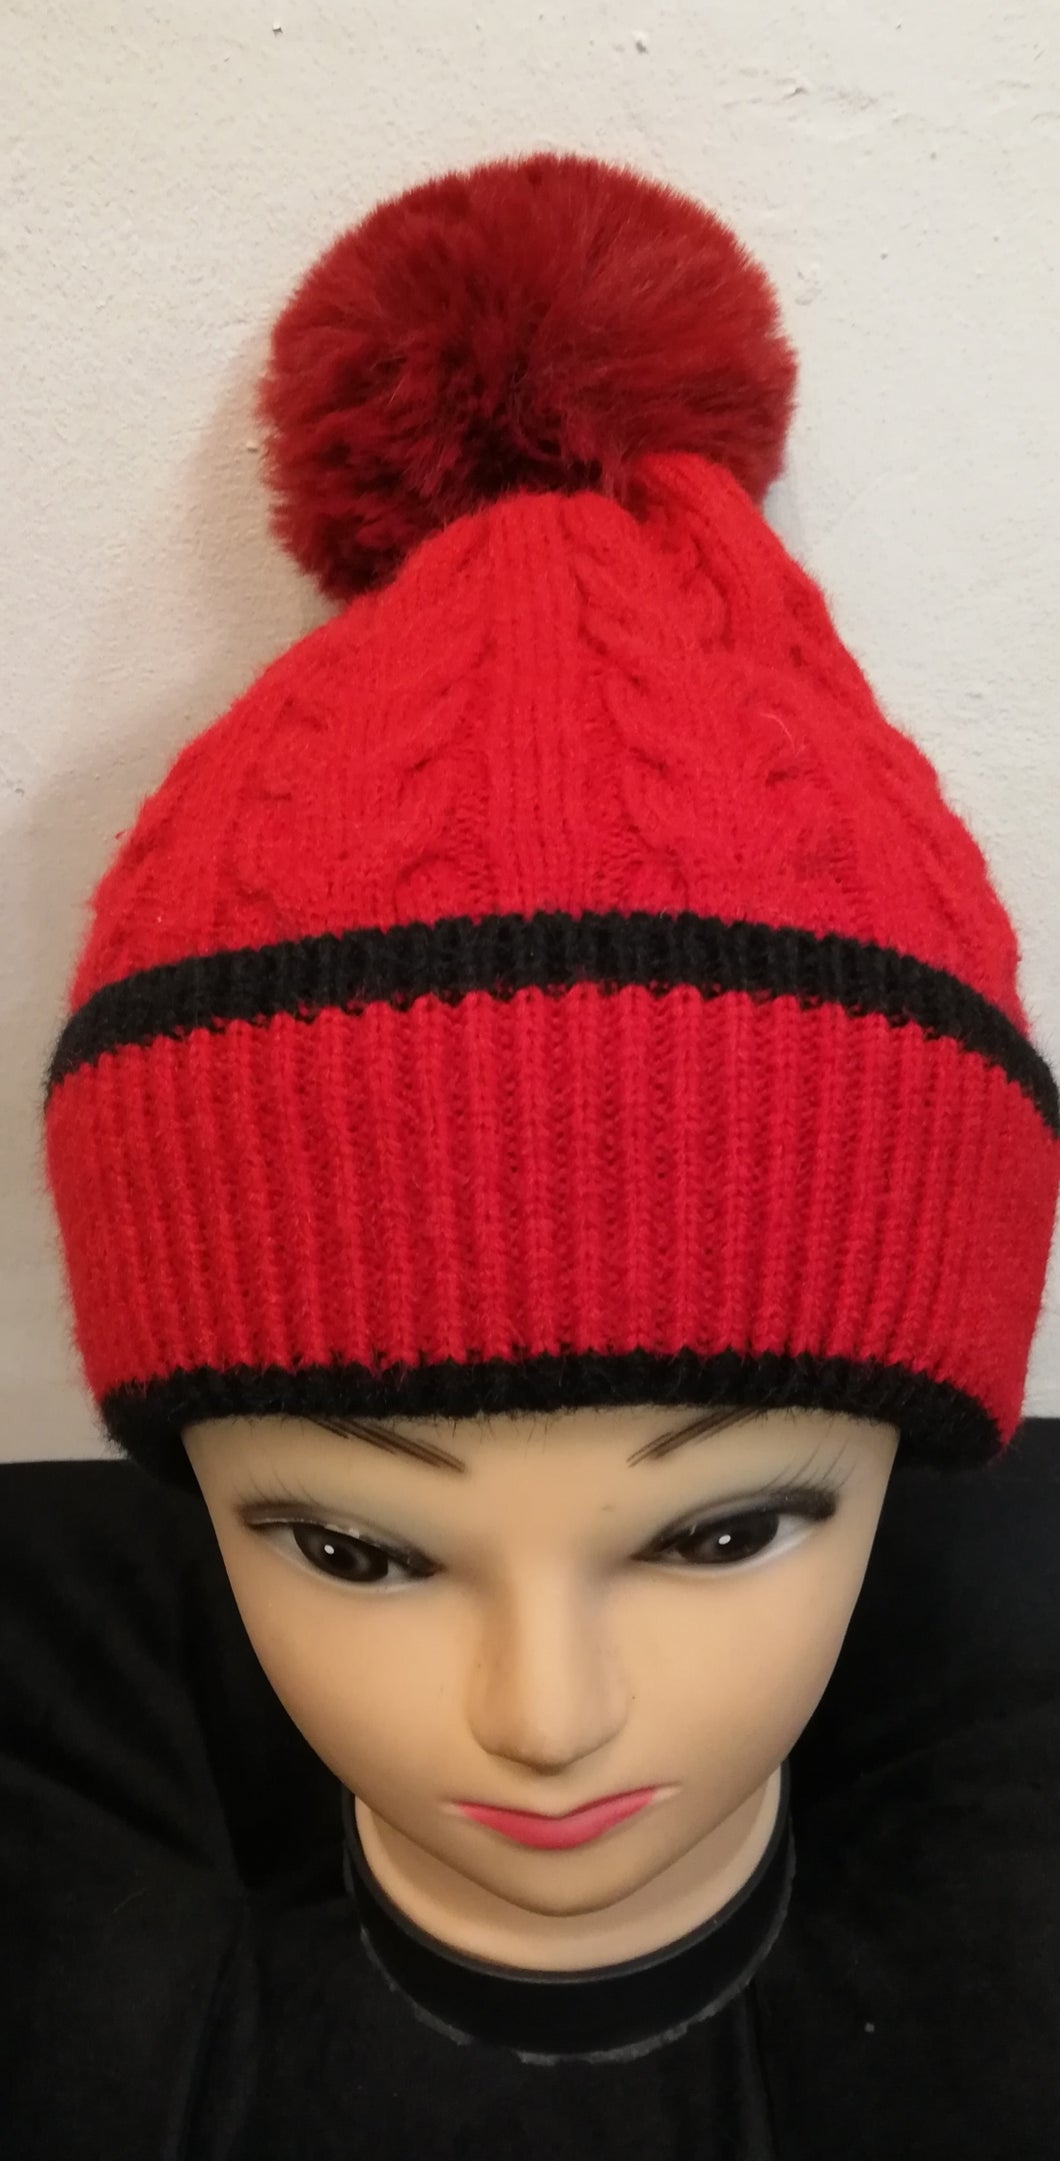 Hat Red with Black pipe SALE PRICE £7.50 NO RETURN